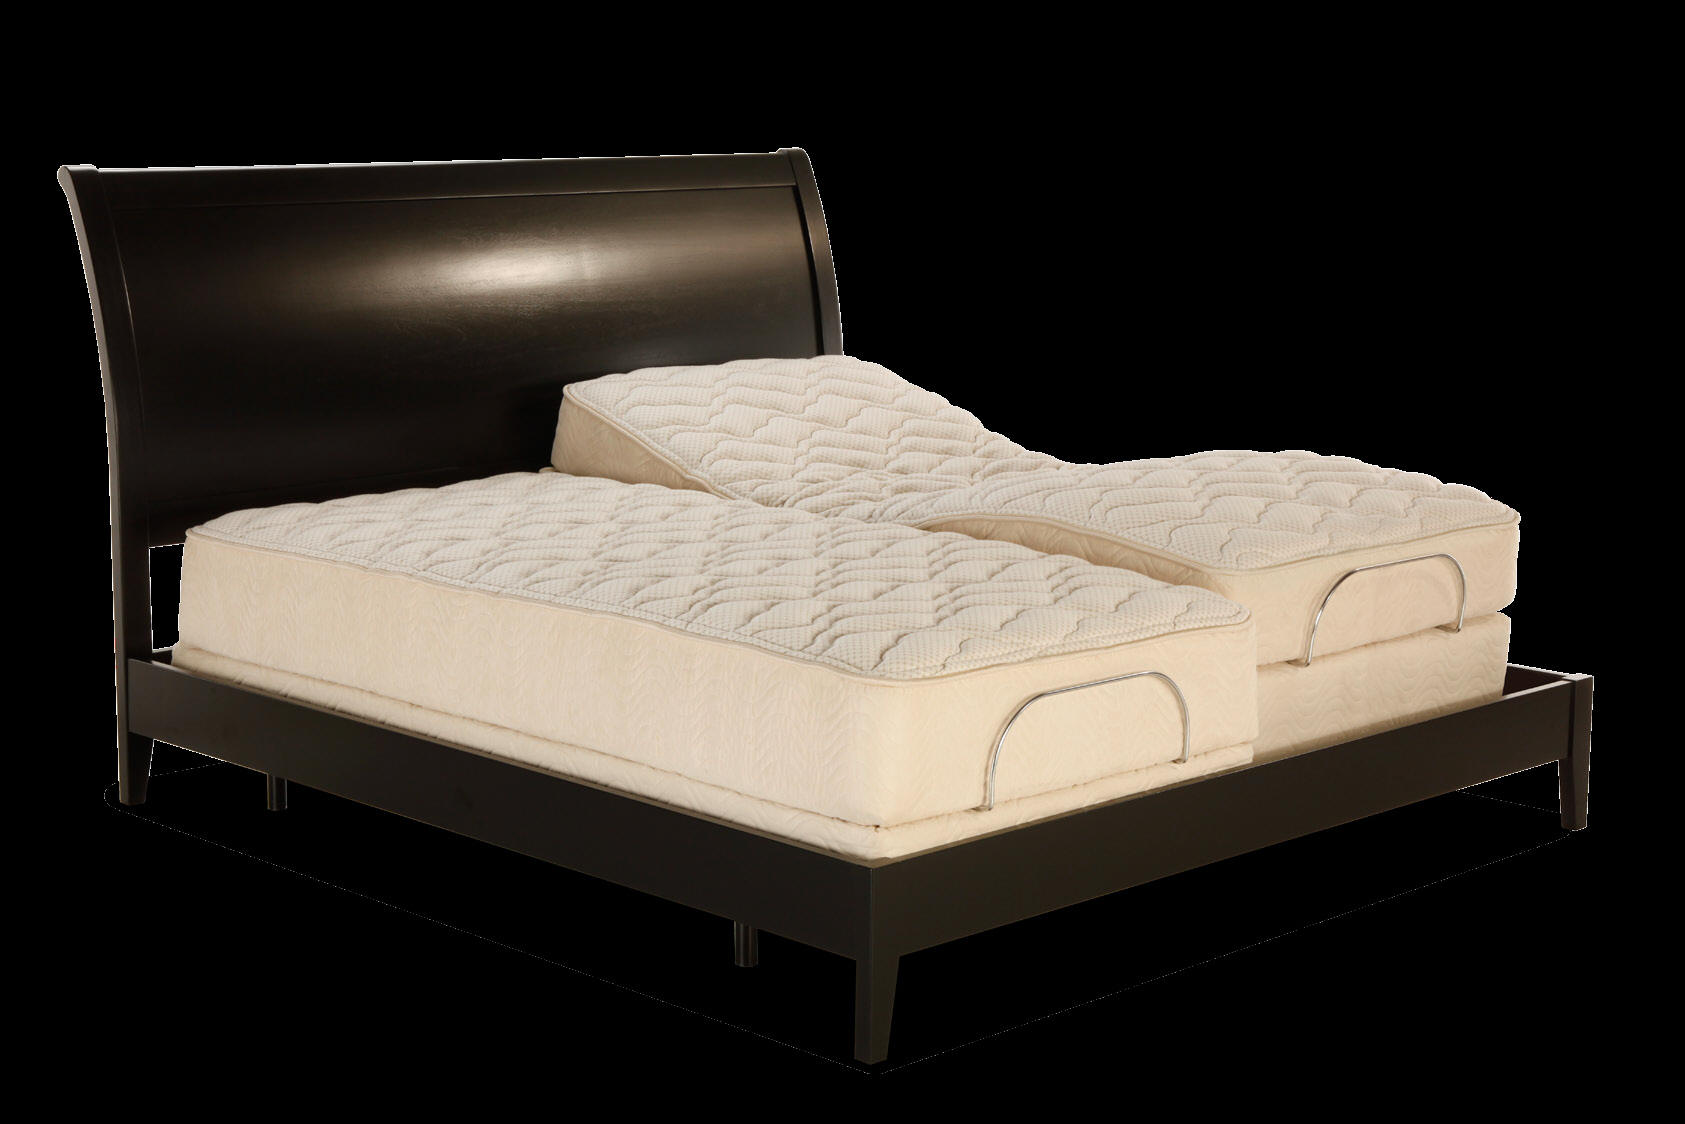 PRODIGY ADJUSTABLE BED